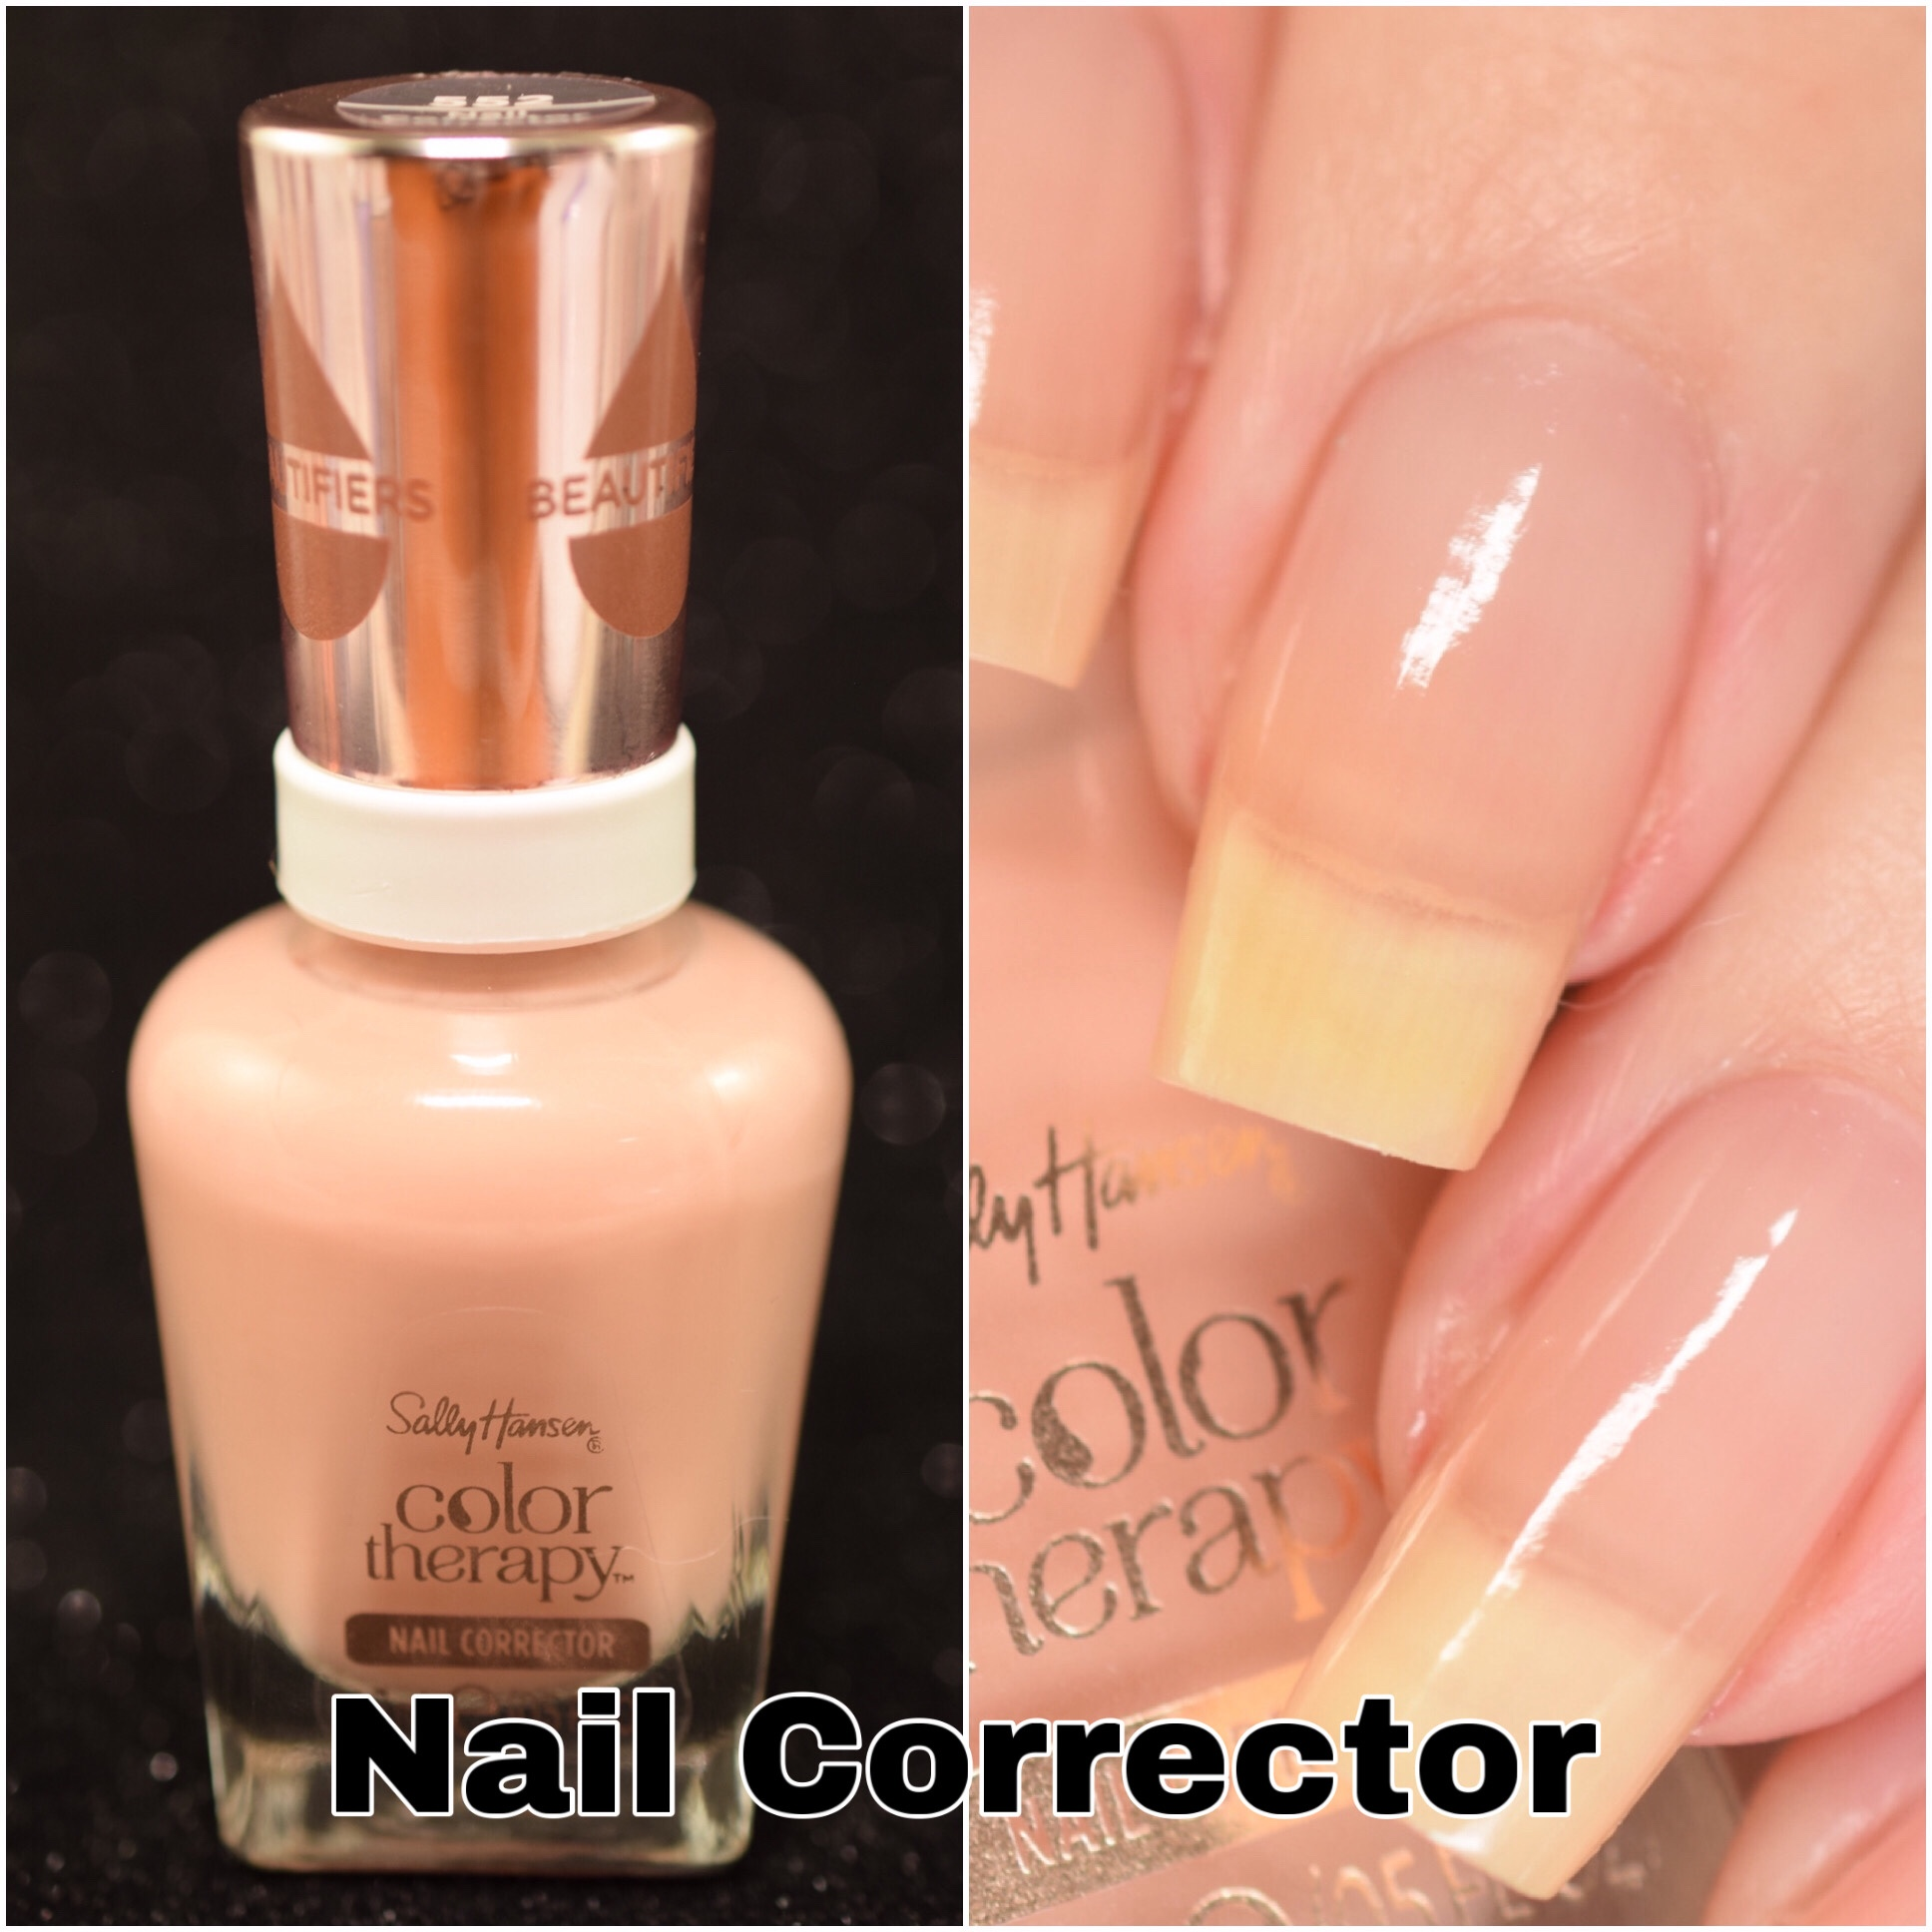 Sally Hansen Color Therapy Nail Corrector